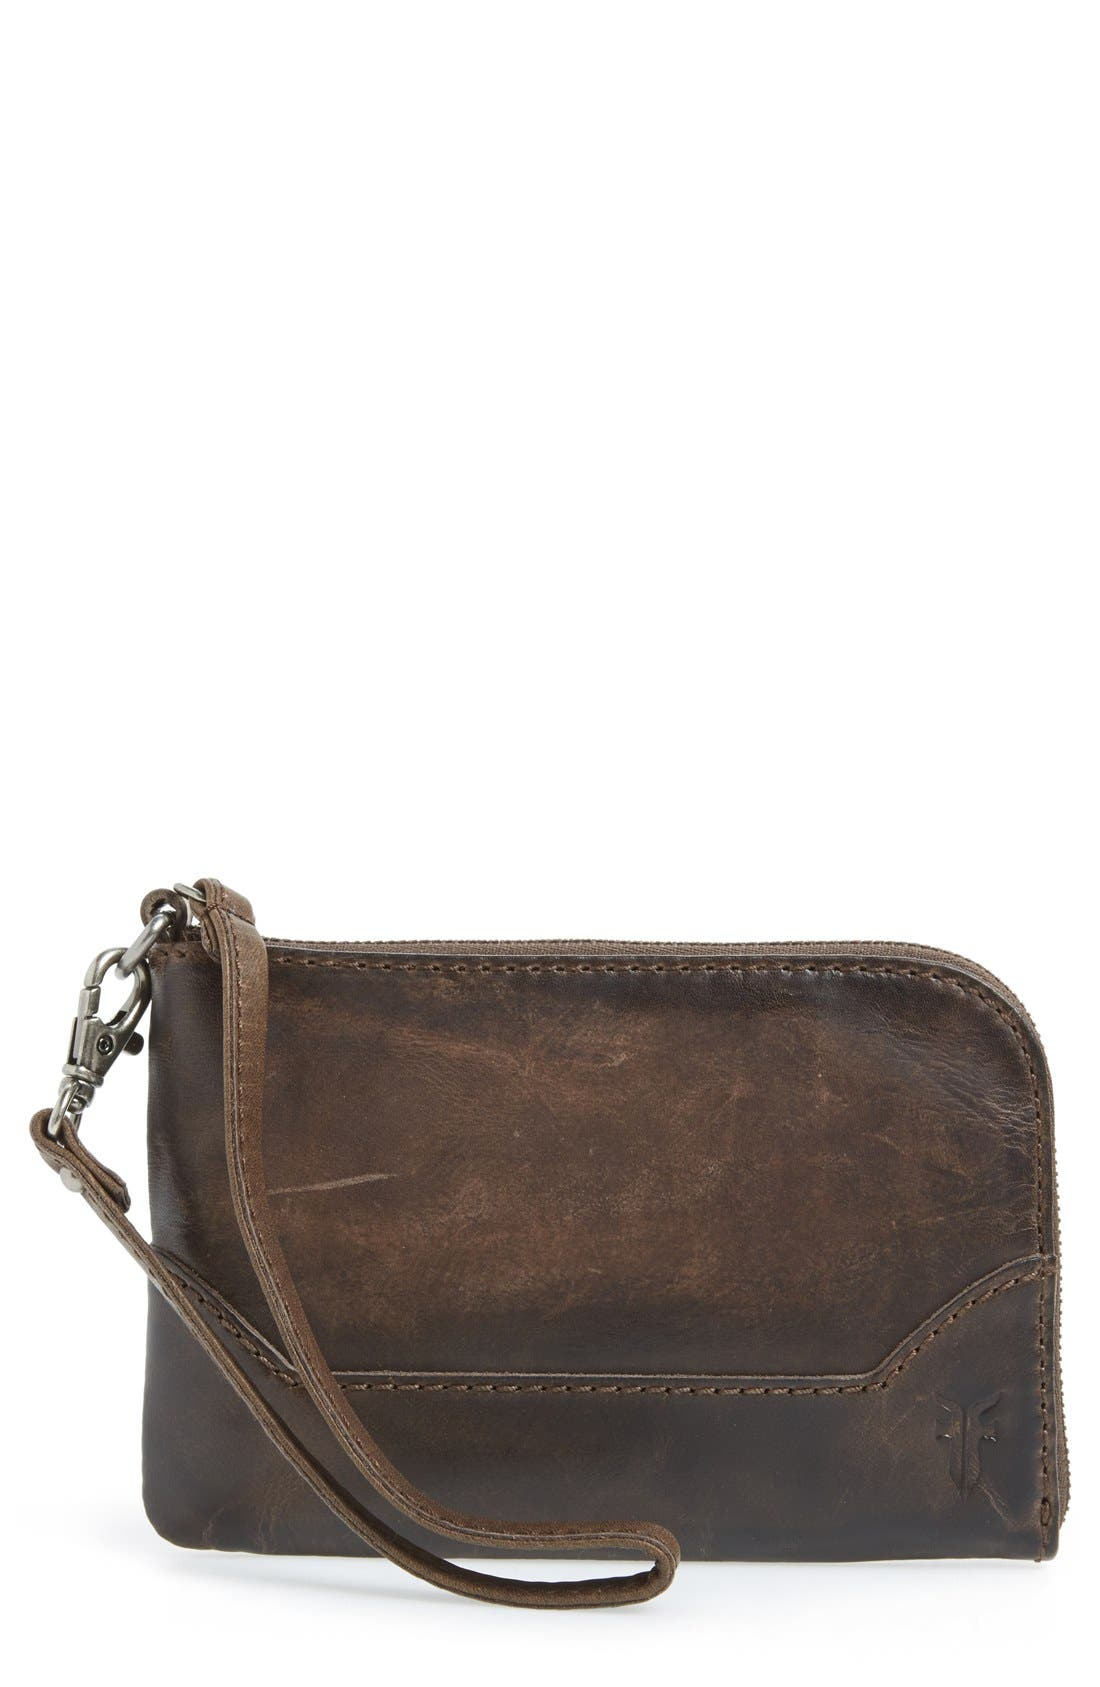 Alternate Image 1 Selected - Frye 'Melissa' Wristlet